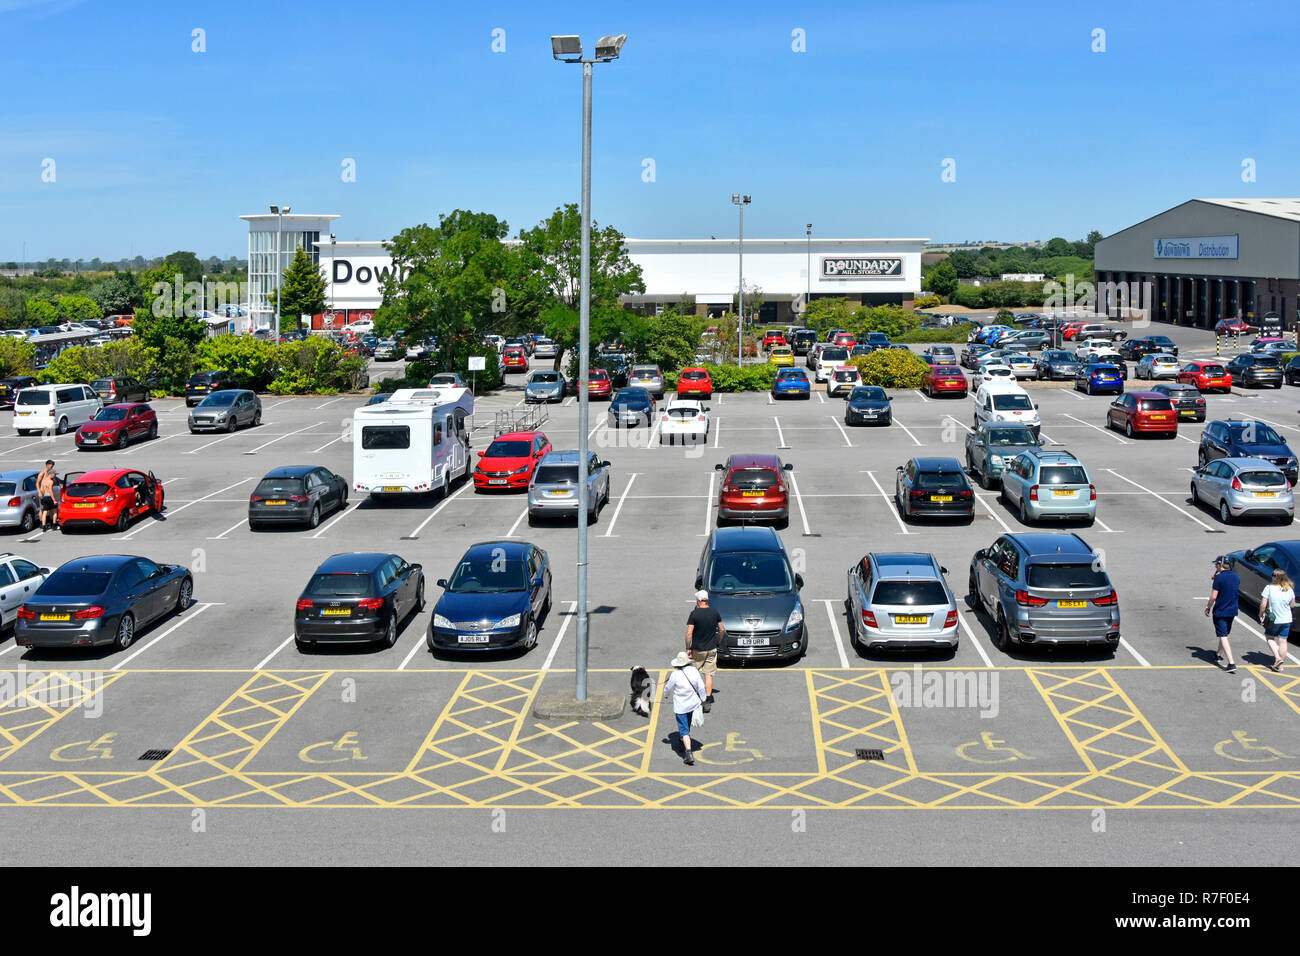 Disabled parking space in free car park at Downtown department store retail superstore warehouse shopping business Grantham Lincolnshire England UK - Stock Image